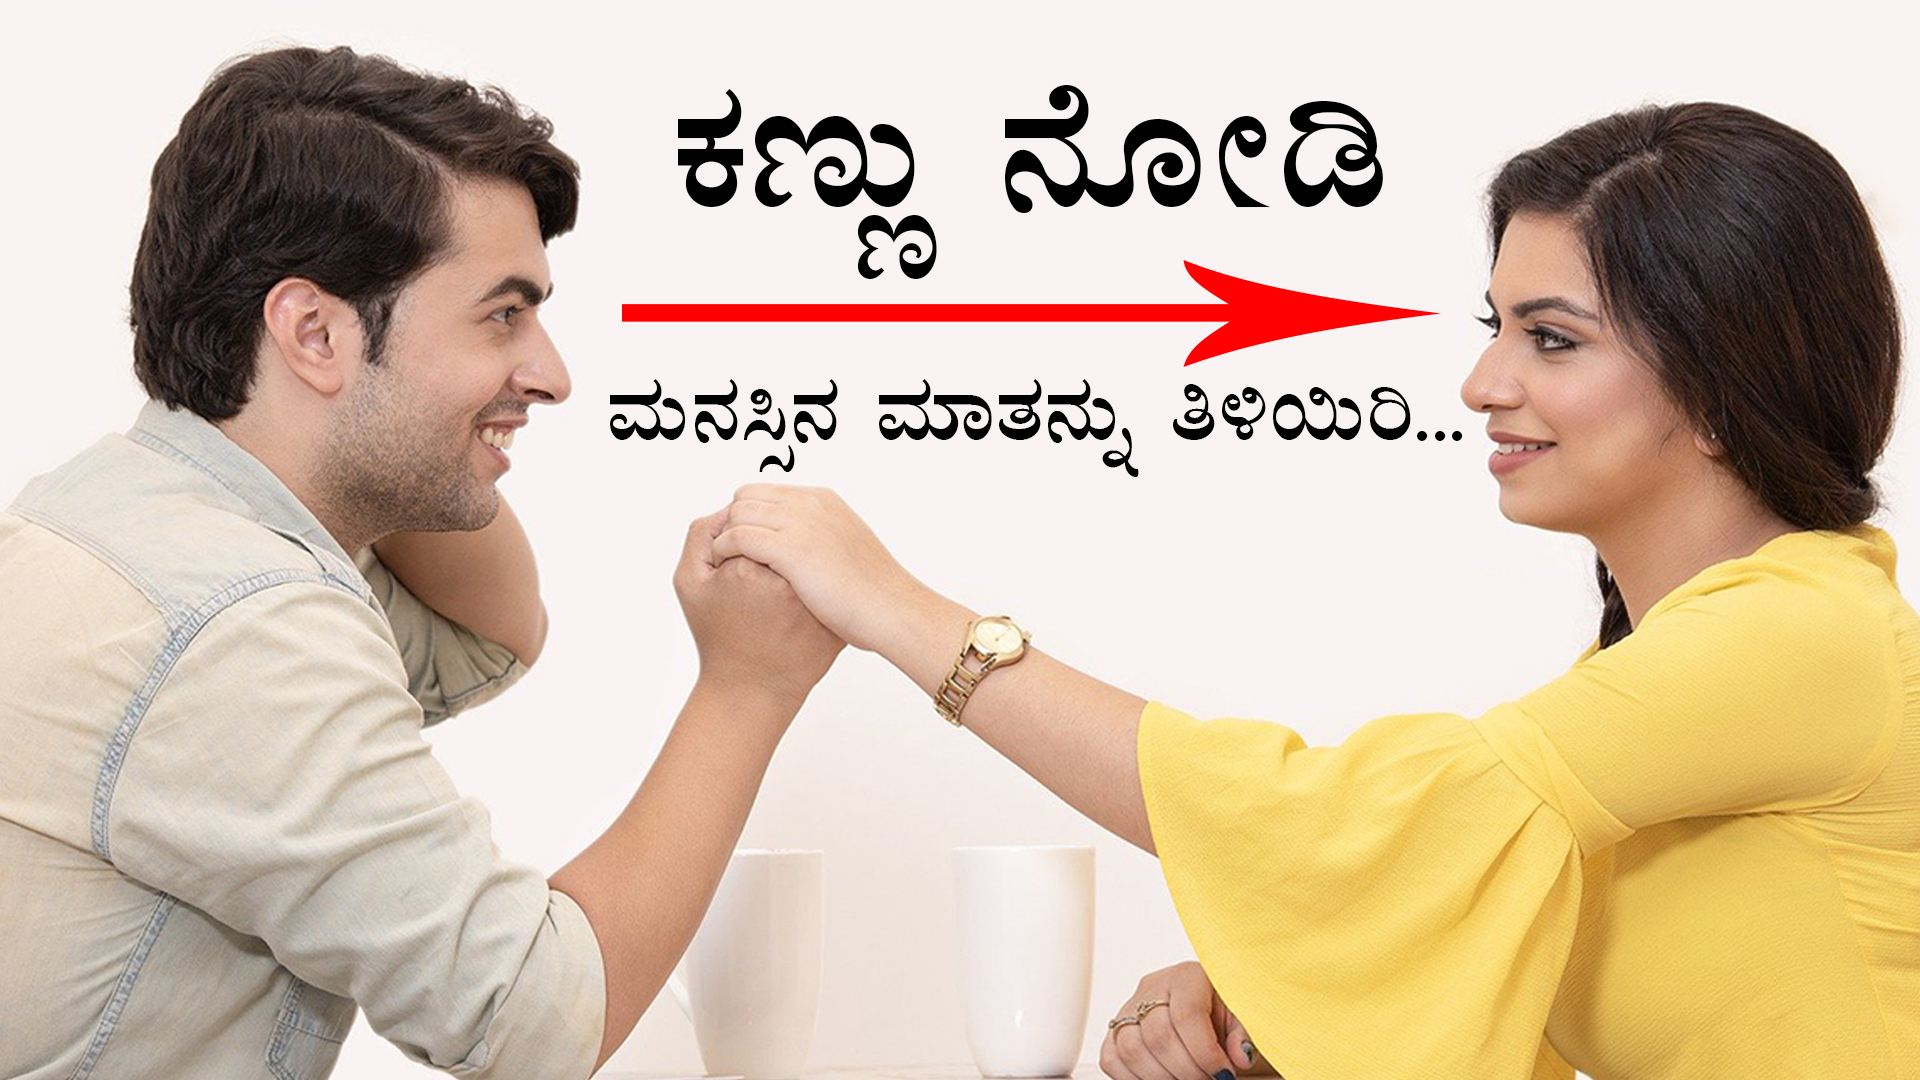 Eye & Mind Psychology and Body Language Tricks in Kannada